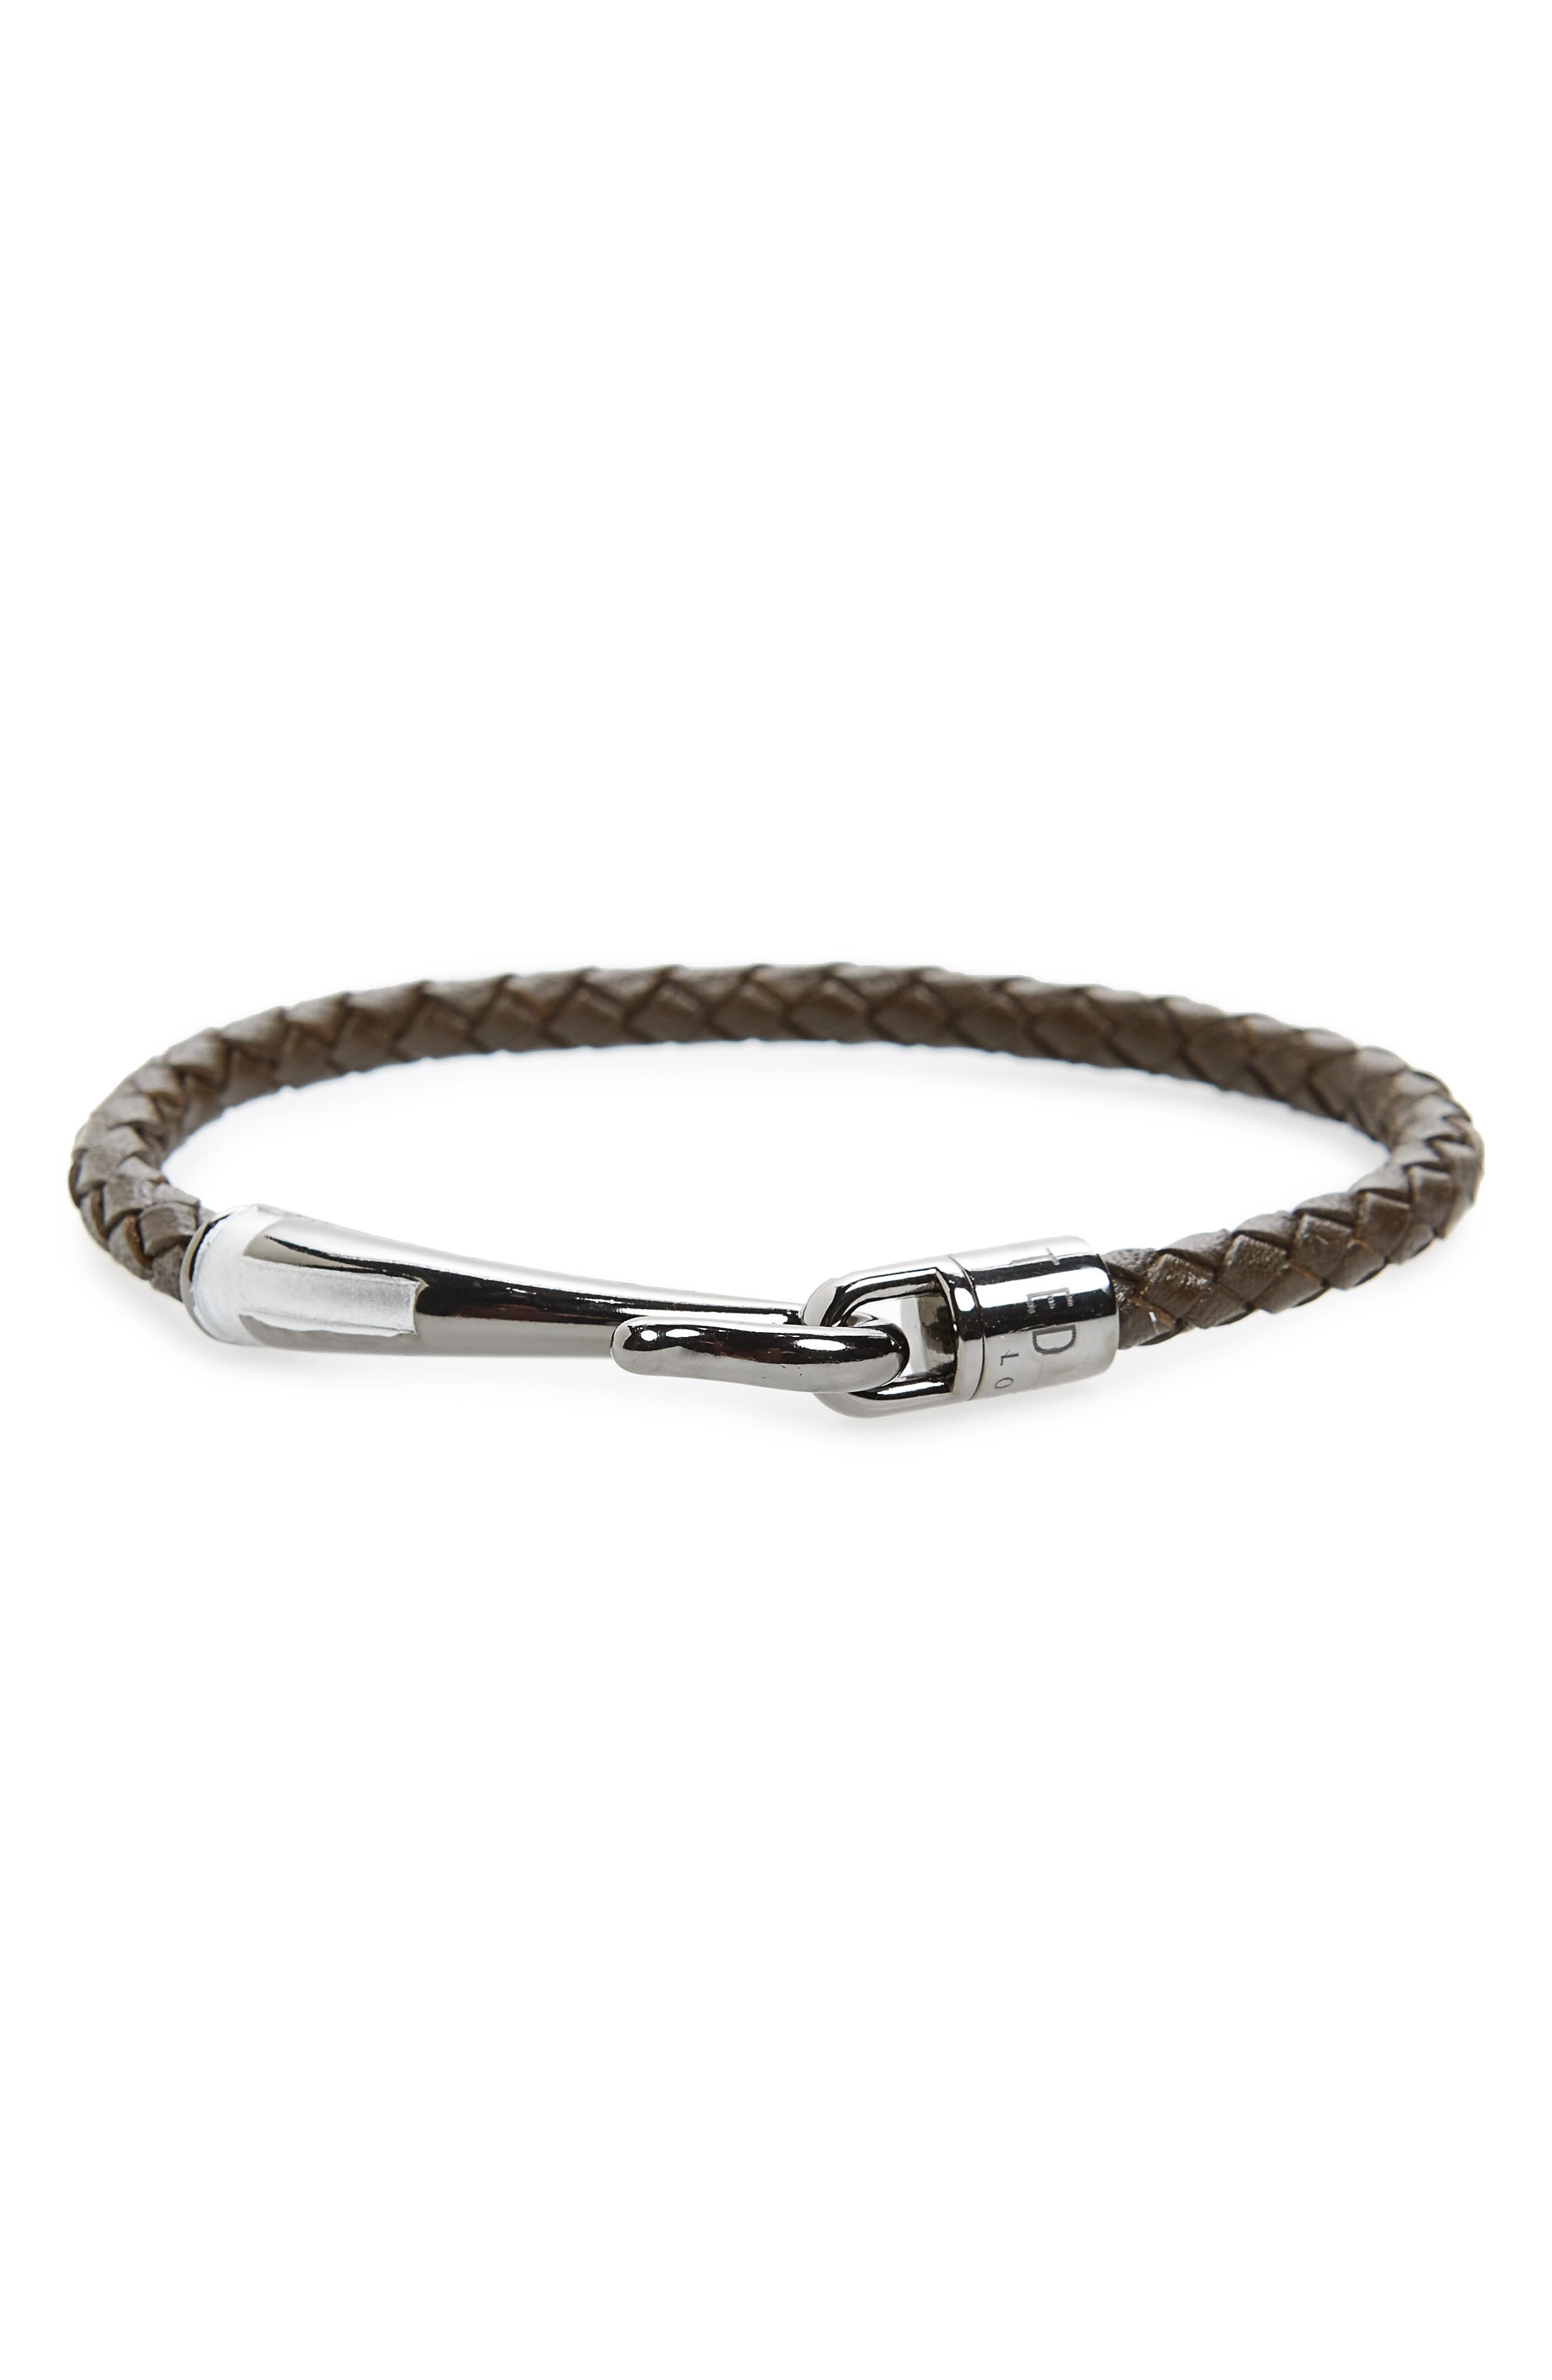 Ted Baker London Chewer Braided Leather Bracelet